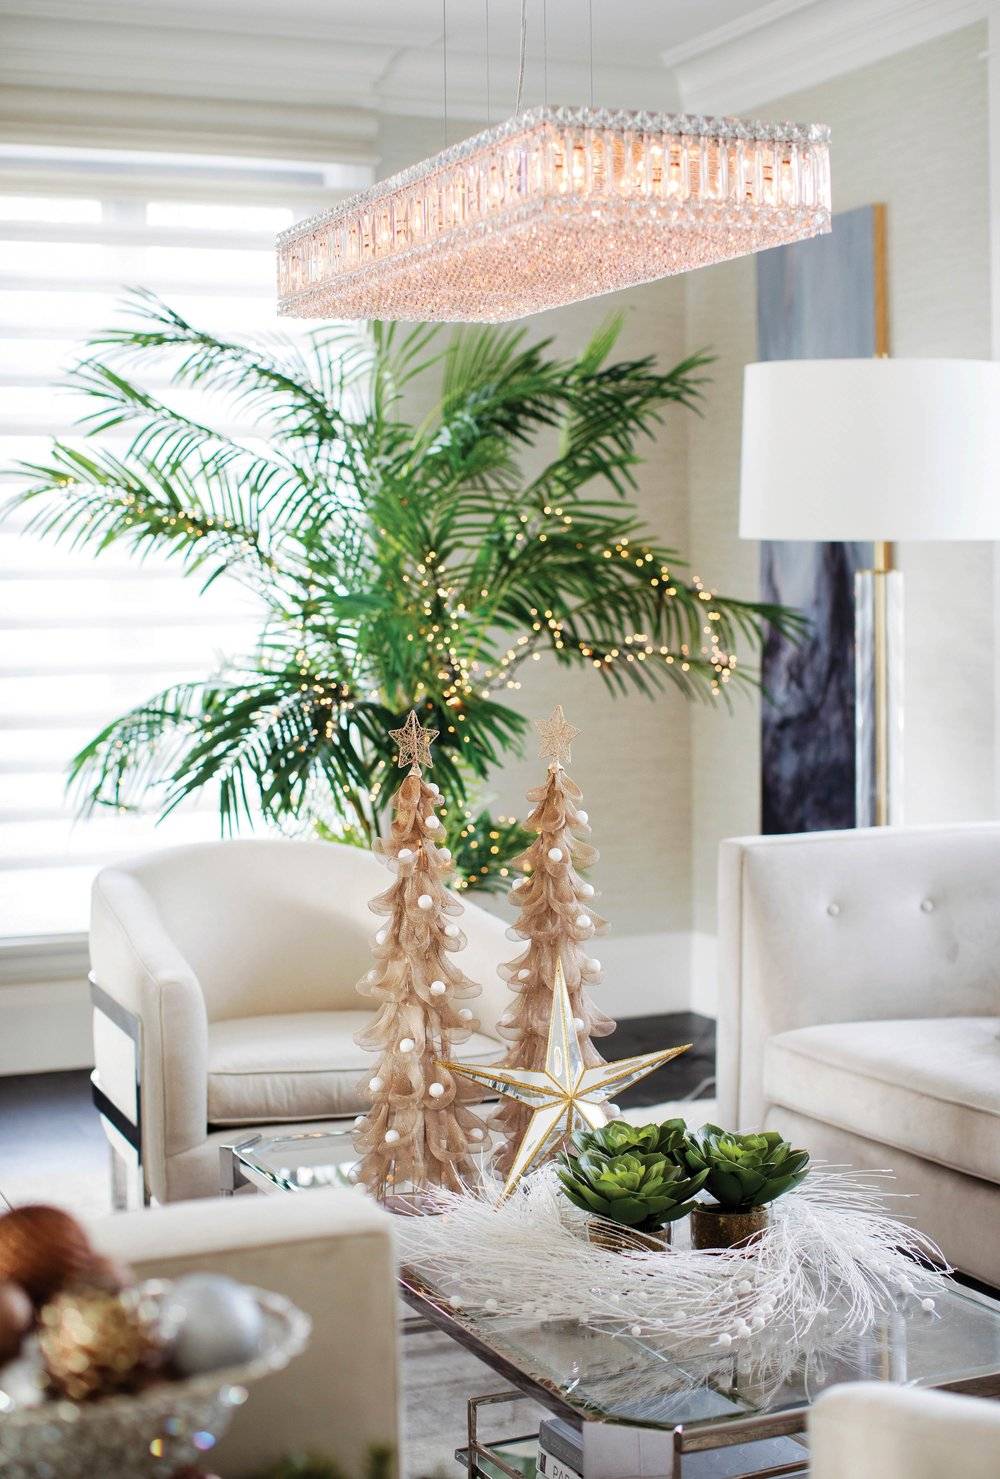 A memorable design surprise: a palm tree with small gold lights, completed by gold-dipped coffee-table décor with a white wreath surround. Courtesy of GardenWorks.